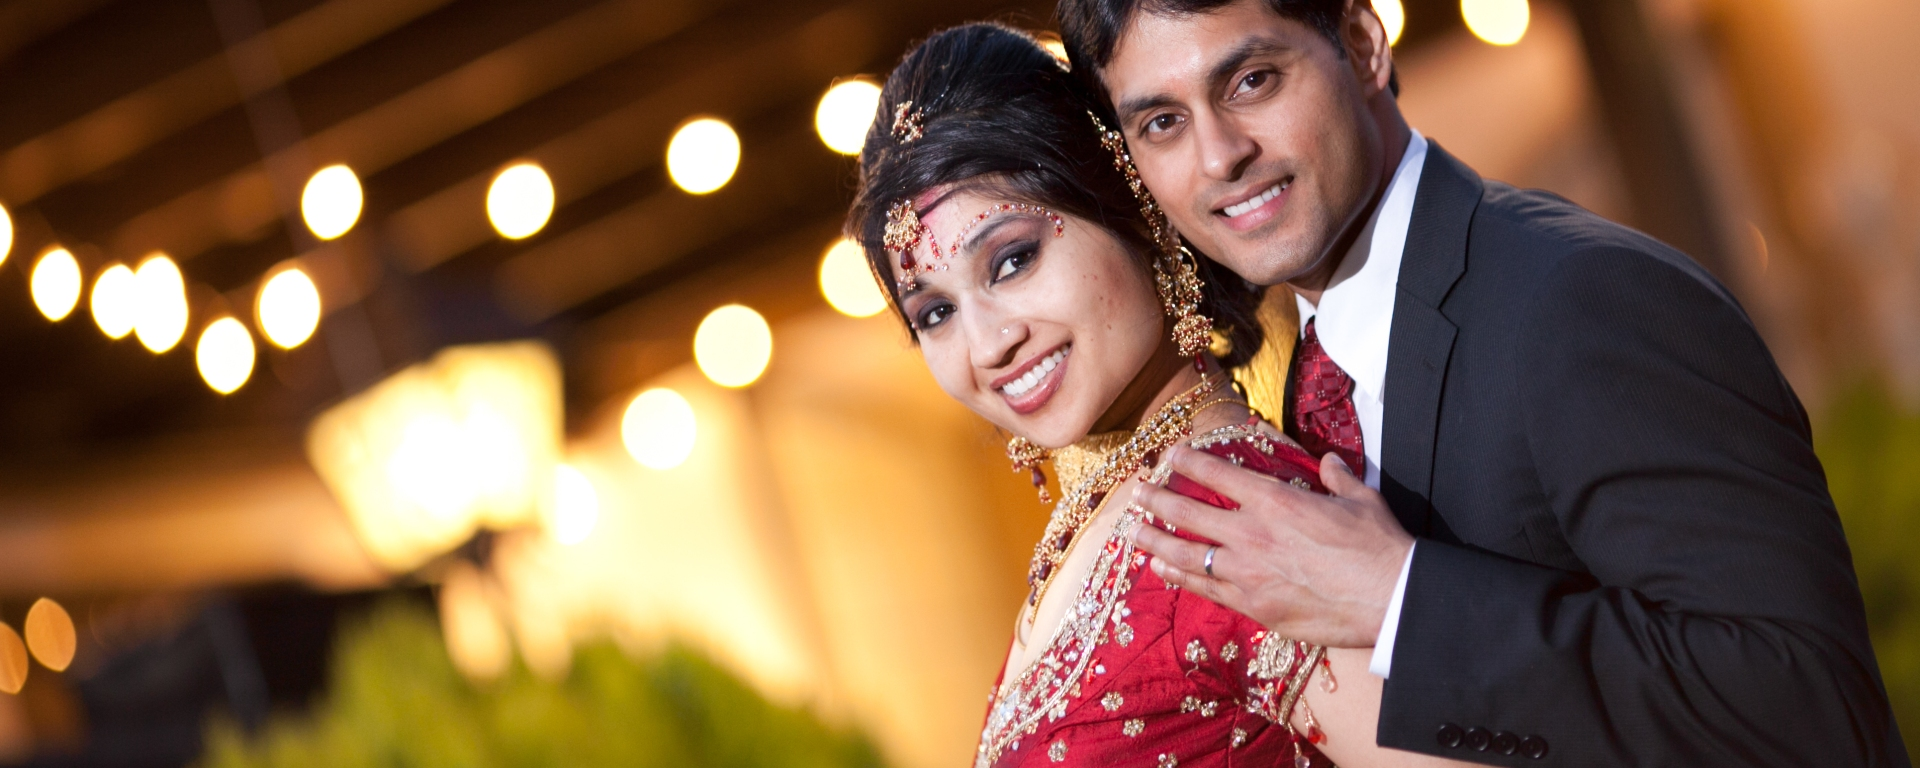 Lovely photo of an Indian bride and groom posing for a photo during their Indian wedding reception.